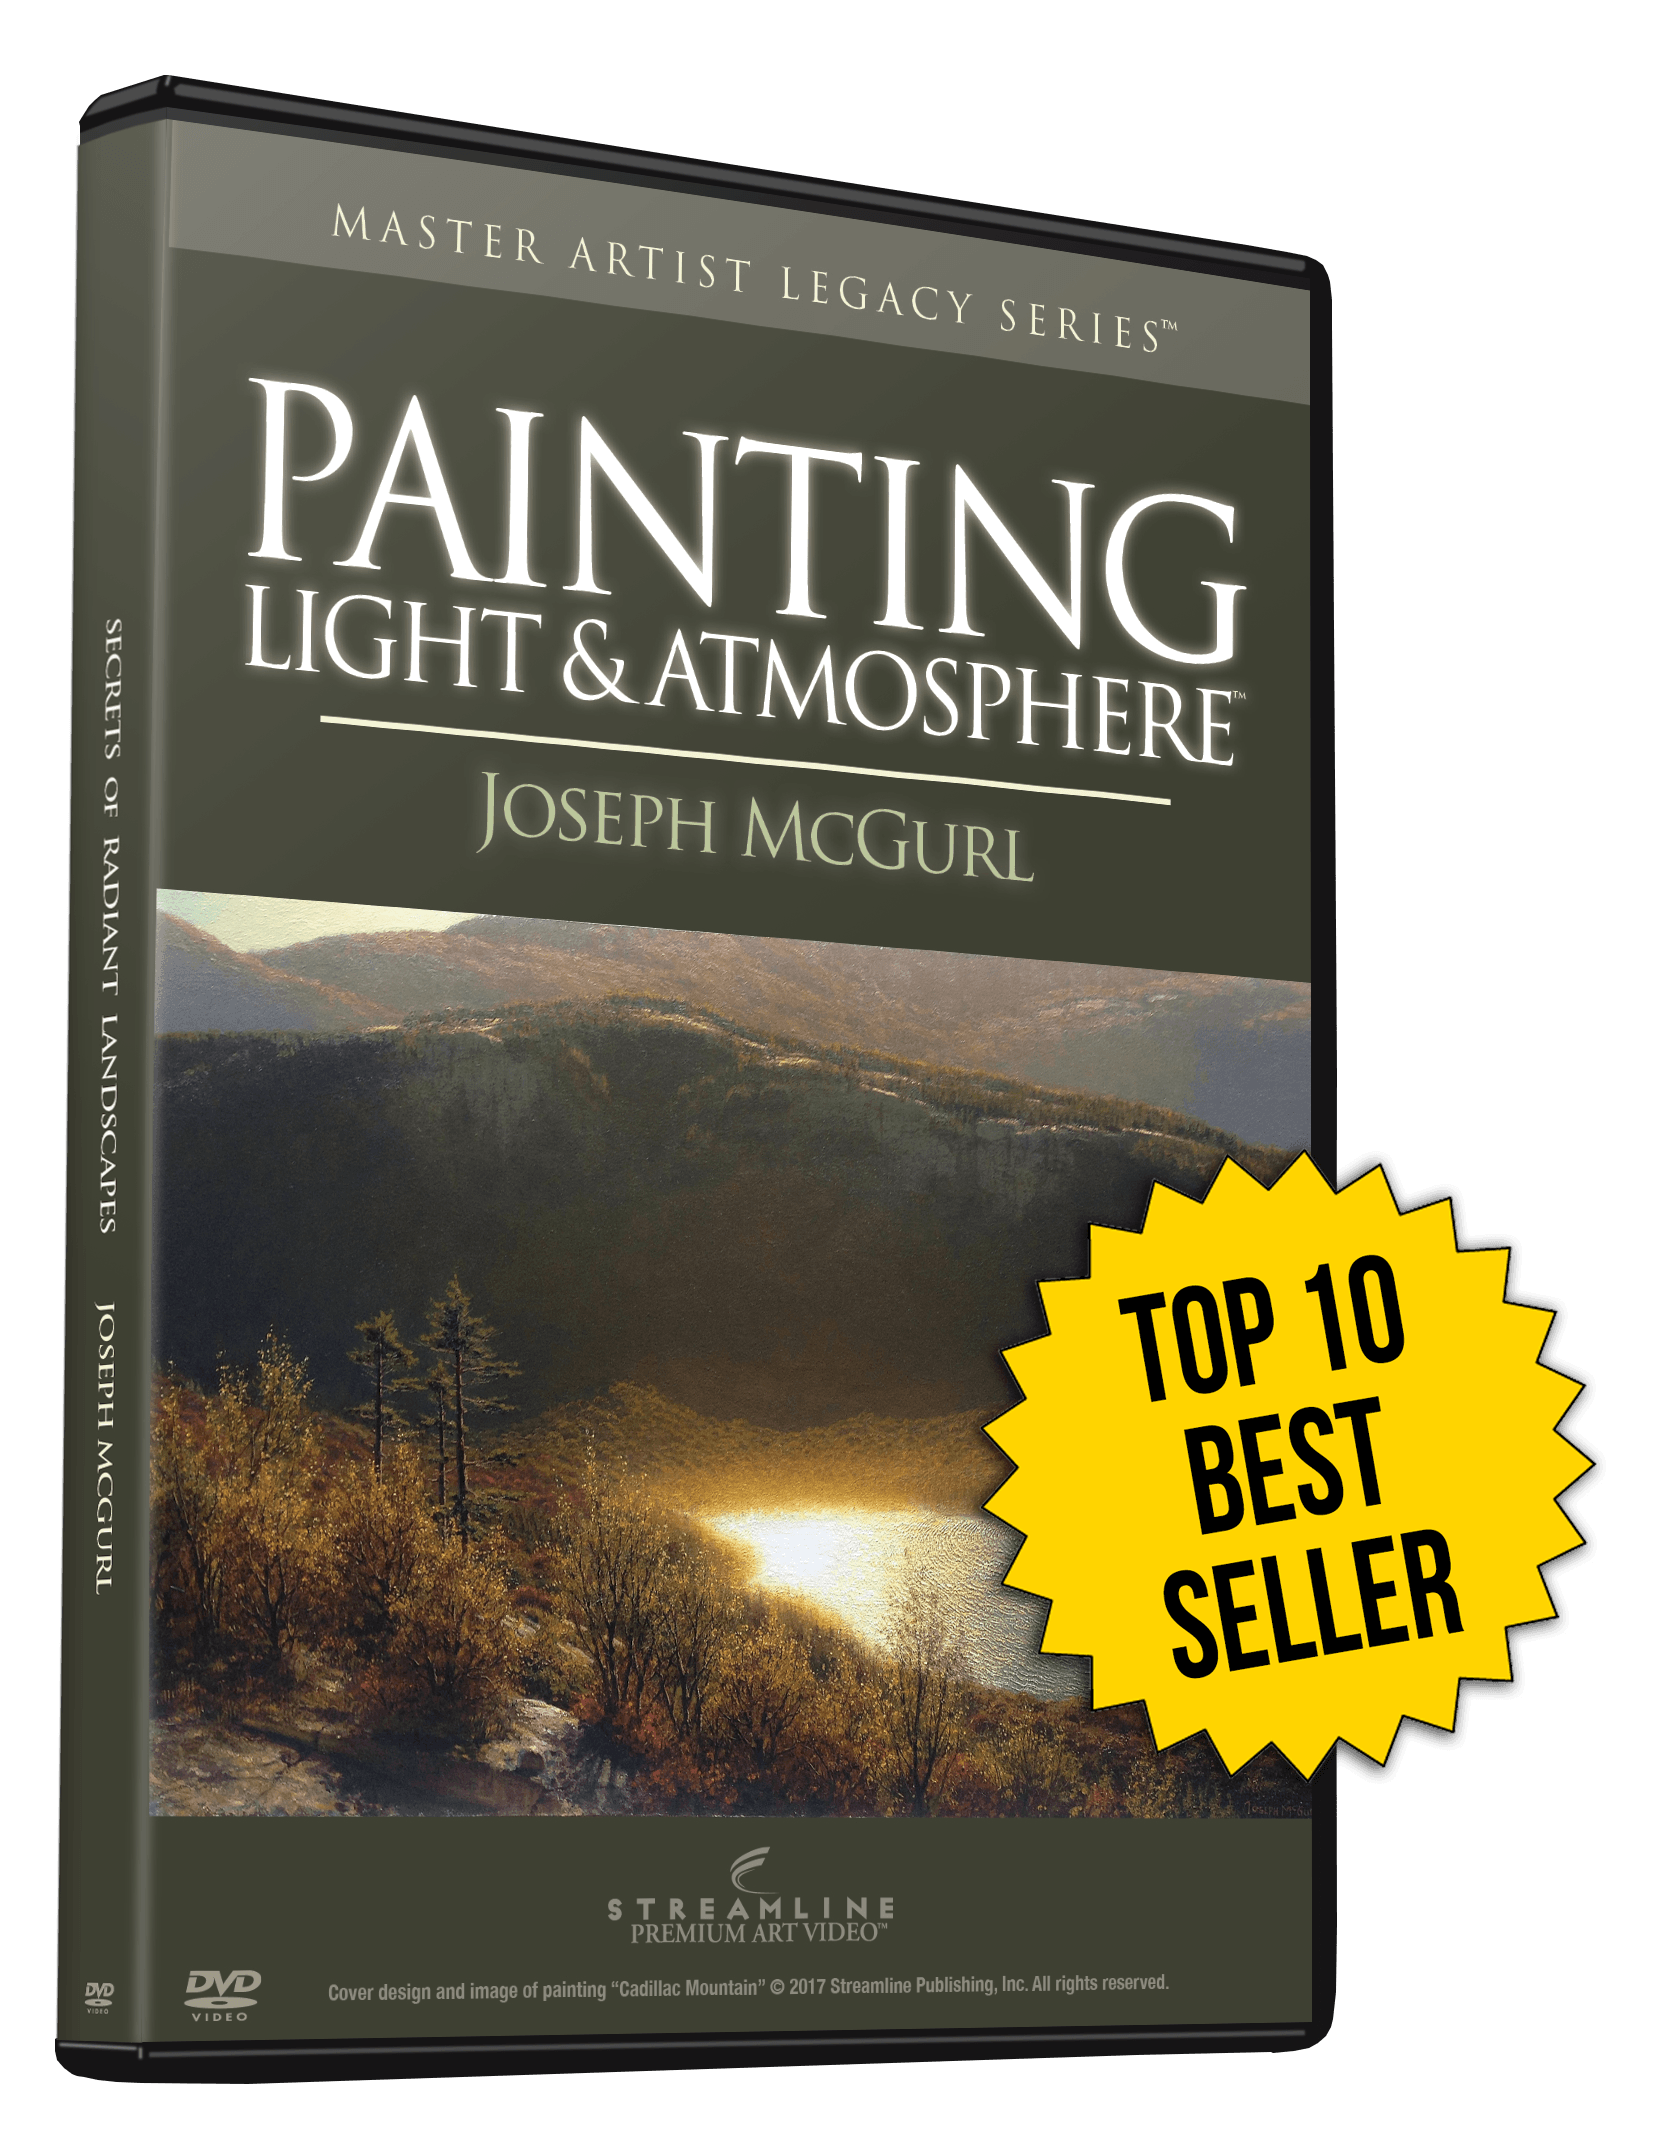 Outdoor drawing composition. Joseph mcgurl painting light